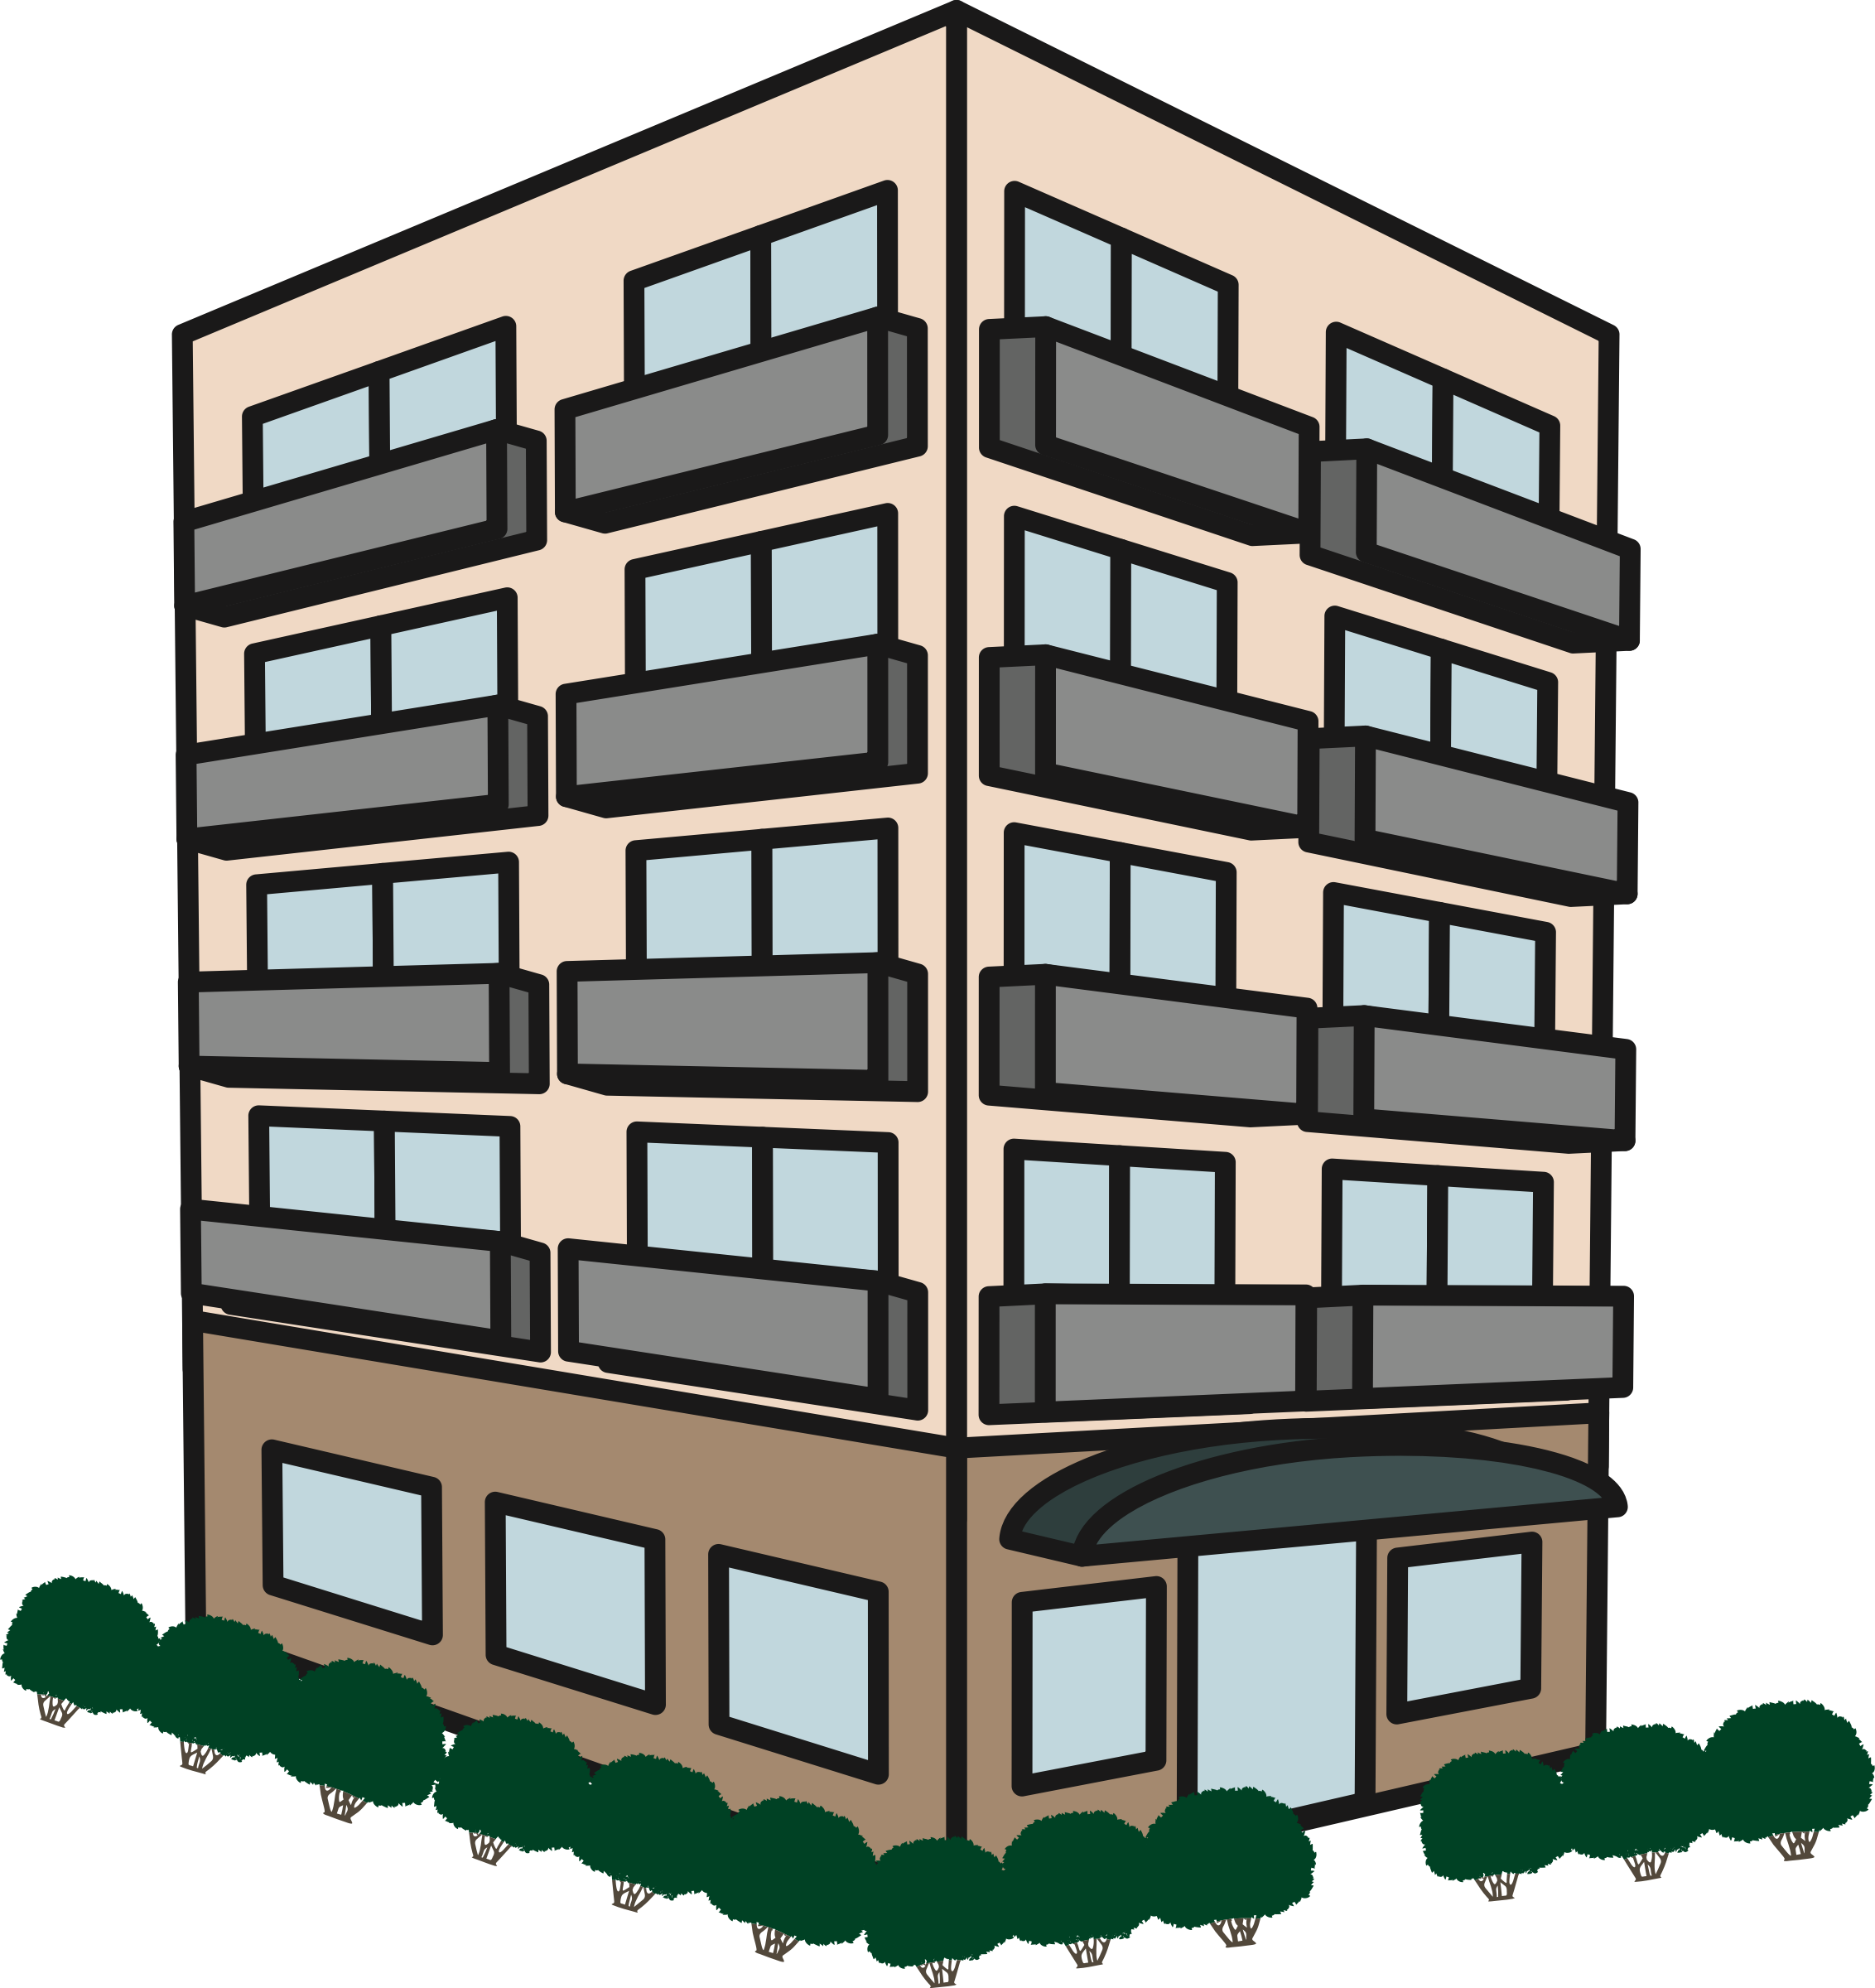 Building icons png free. Apartment clipart transparent